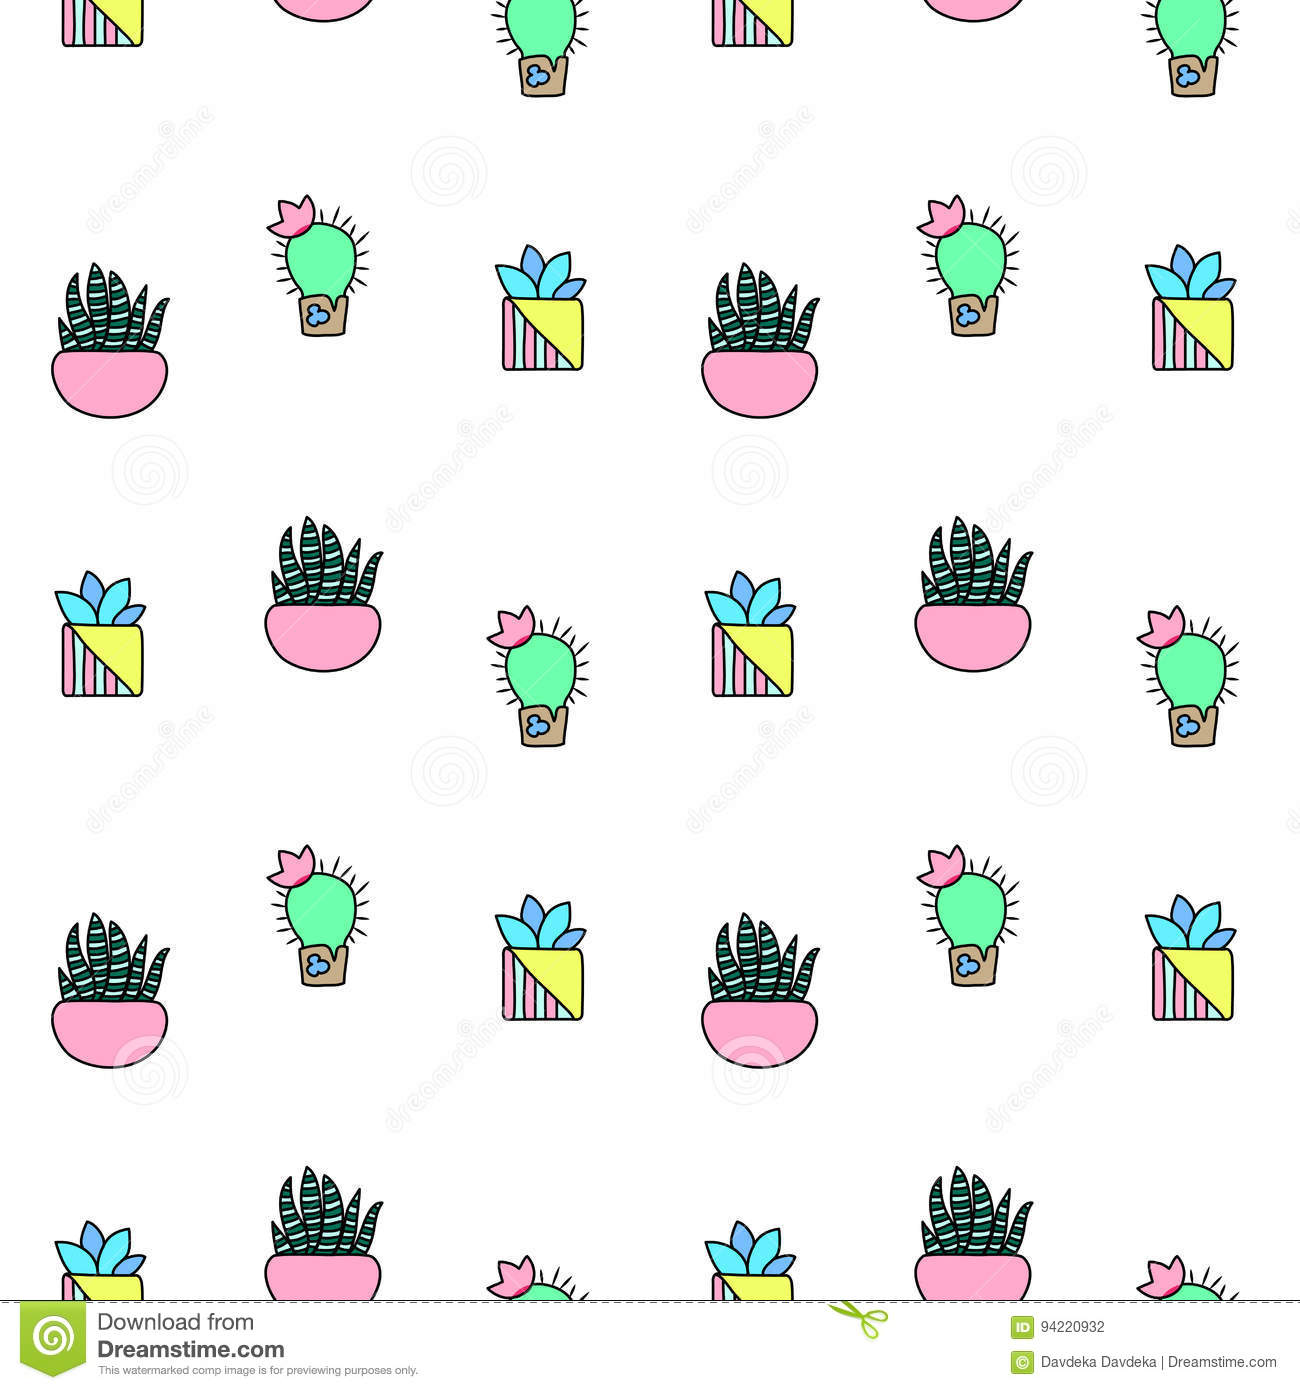 Download Tiny Cactus And Succulent  Seamless Pattern. Green Plants Pattern Tile. Stock Illustration - Illustration of decoration, mexican: 94220932